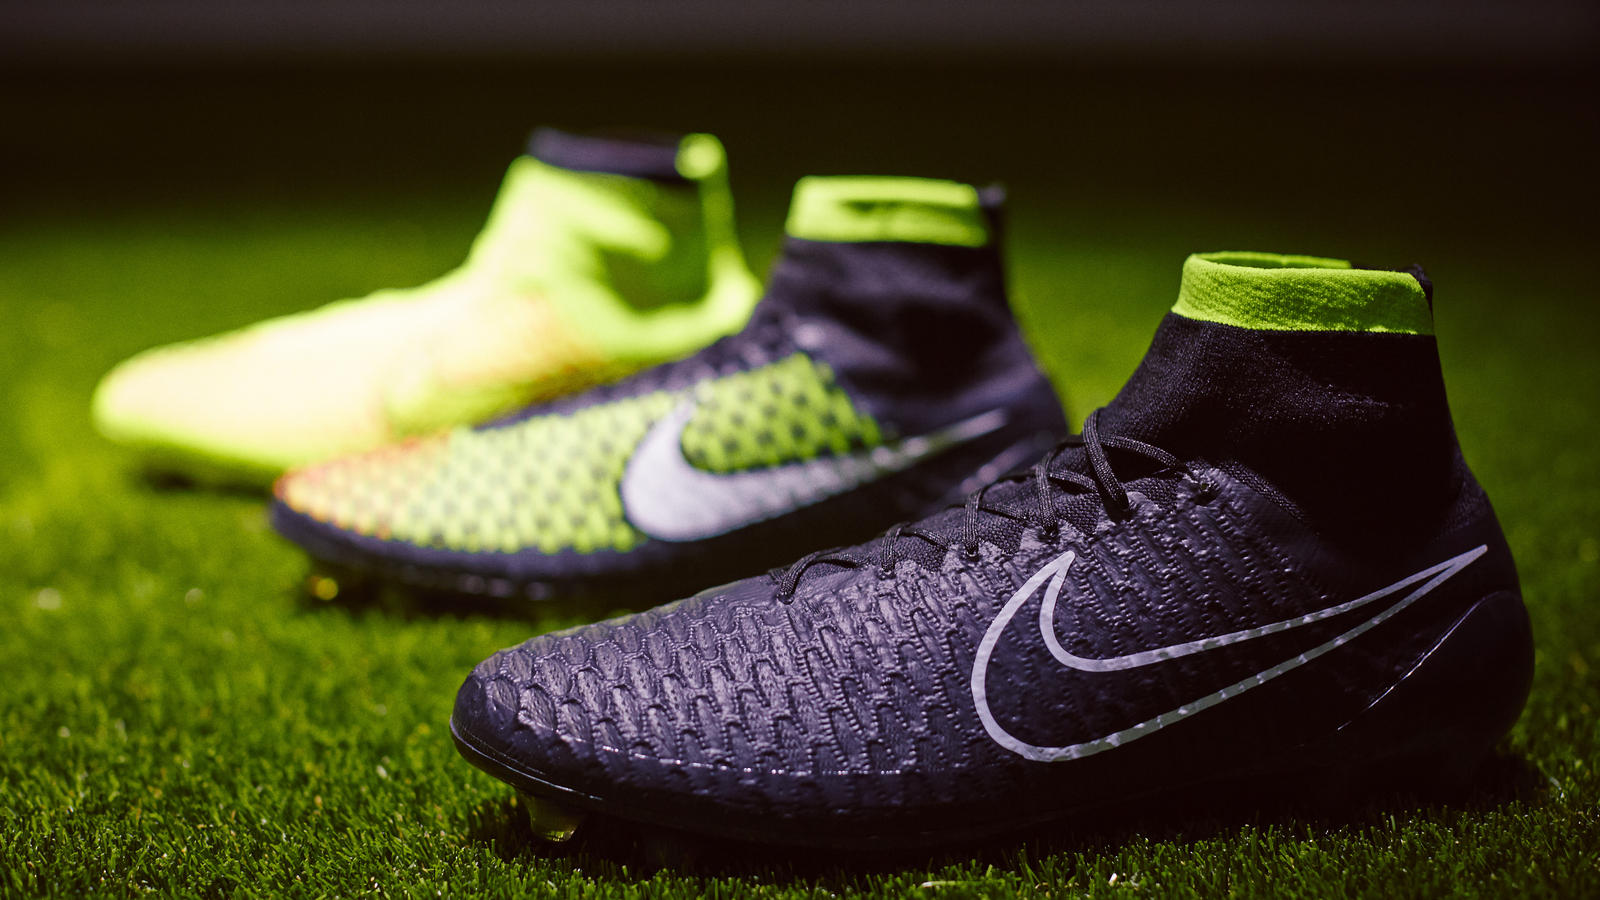 best football shoes in nike